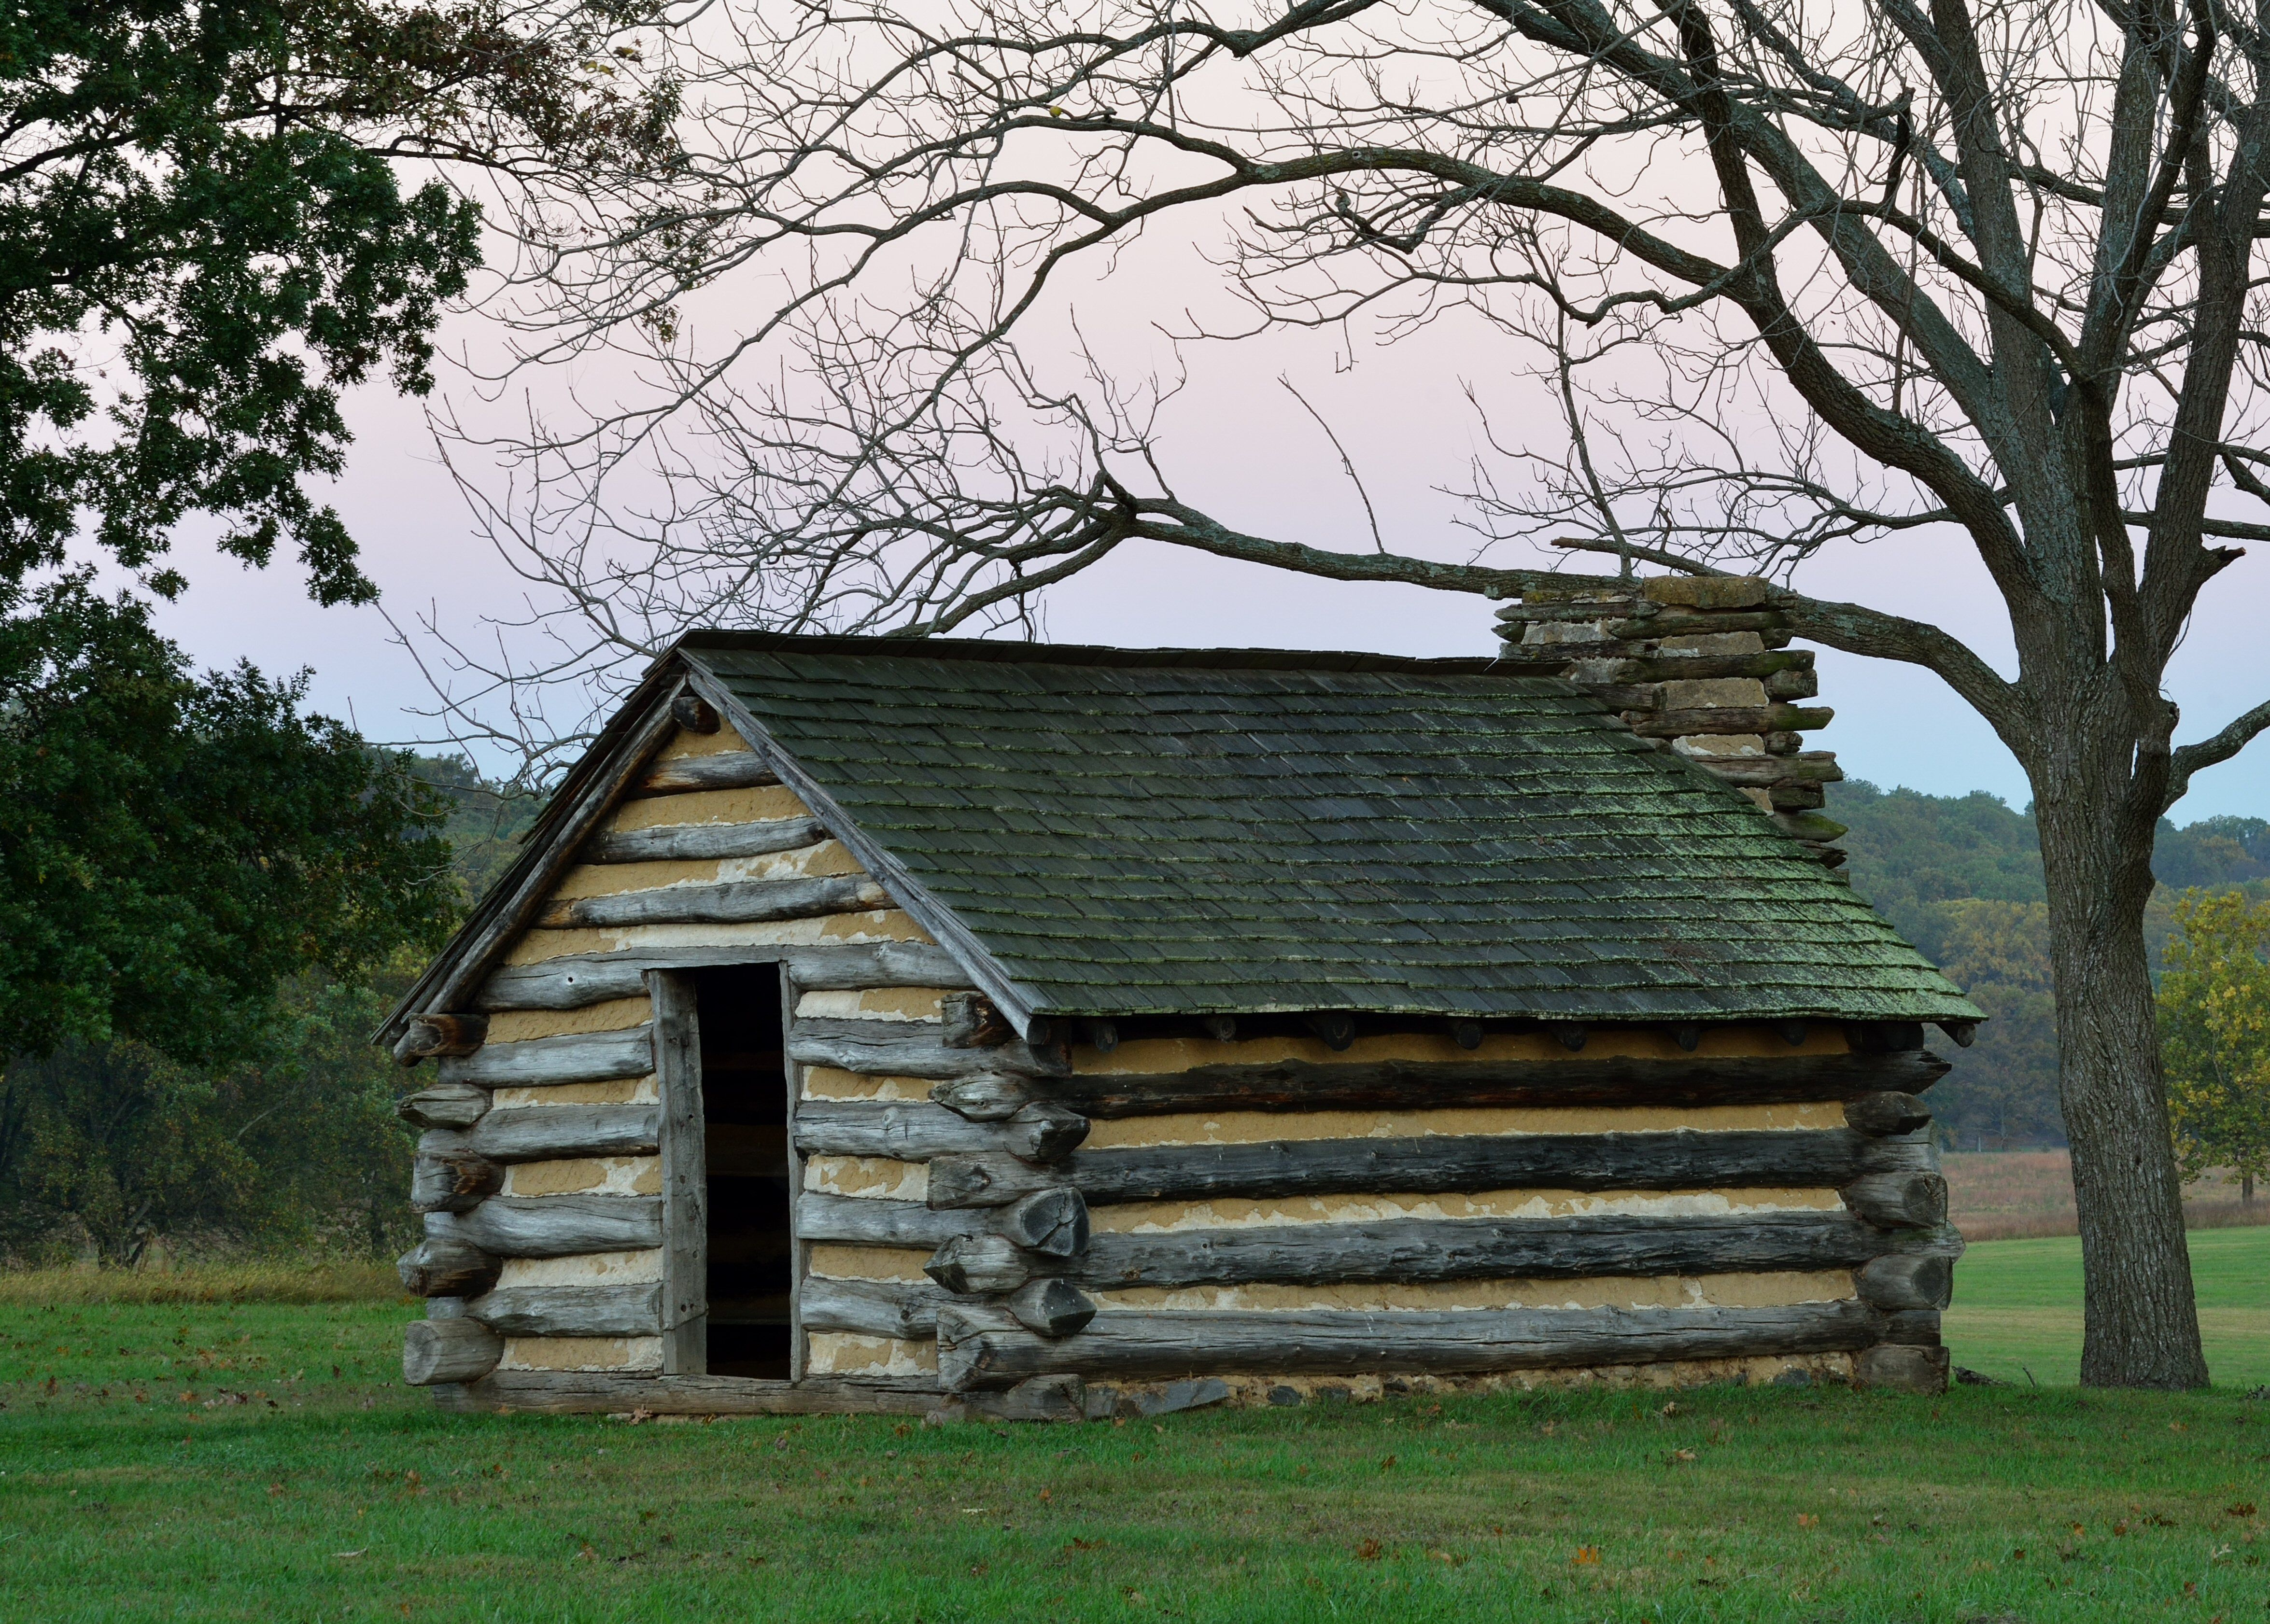 The Architecture Of The Log Cabin